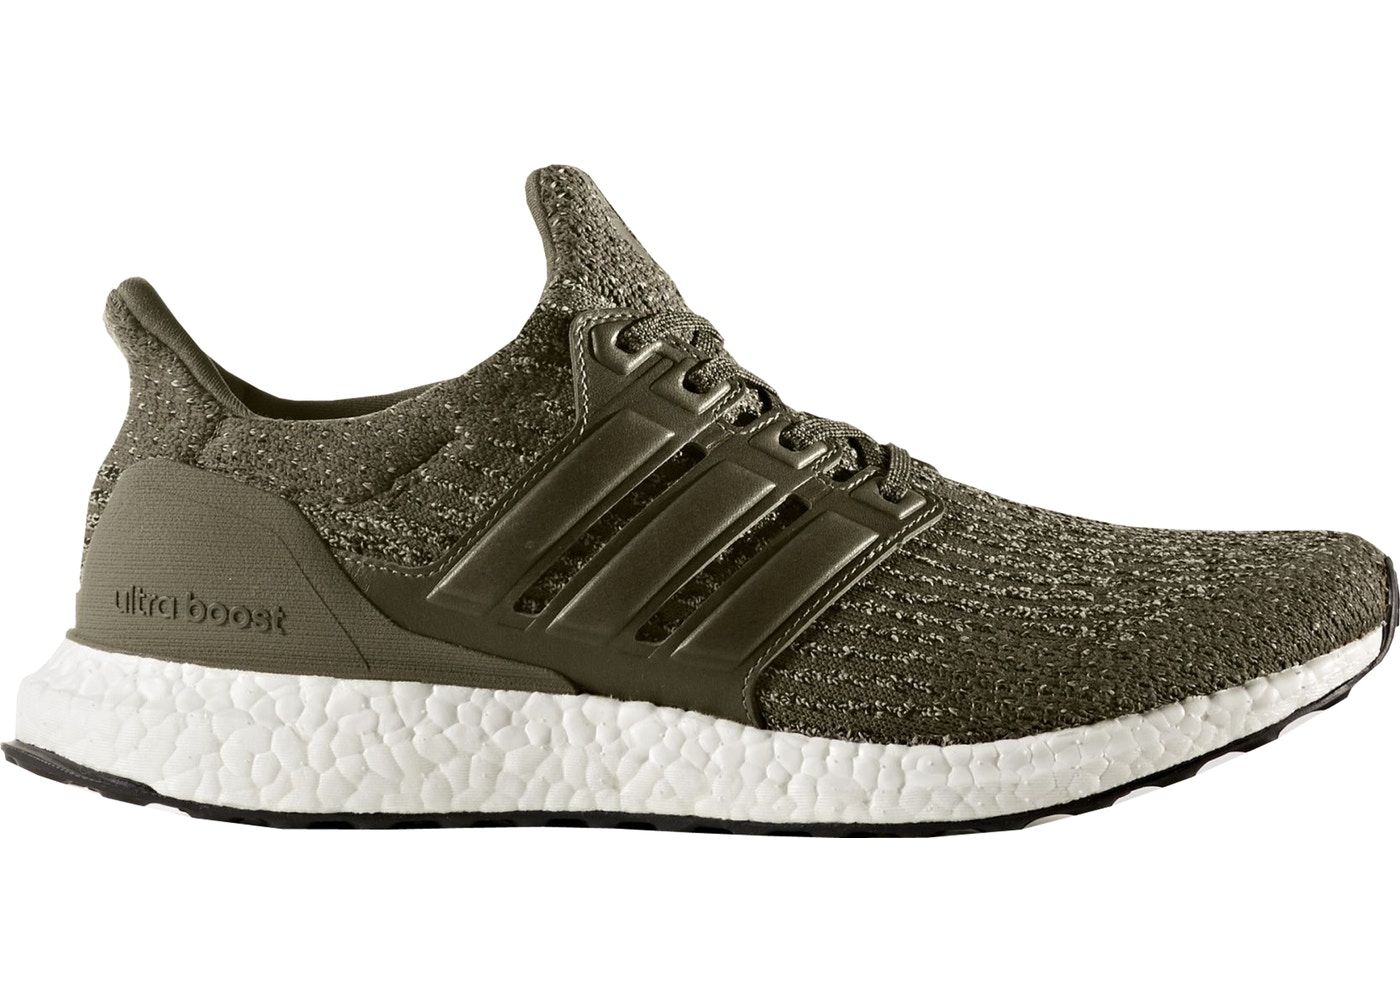 f798a7bb21f00 Check out the adidas Ultra Boost 3.0 Trace Olive available on StockX